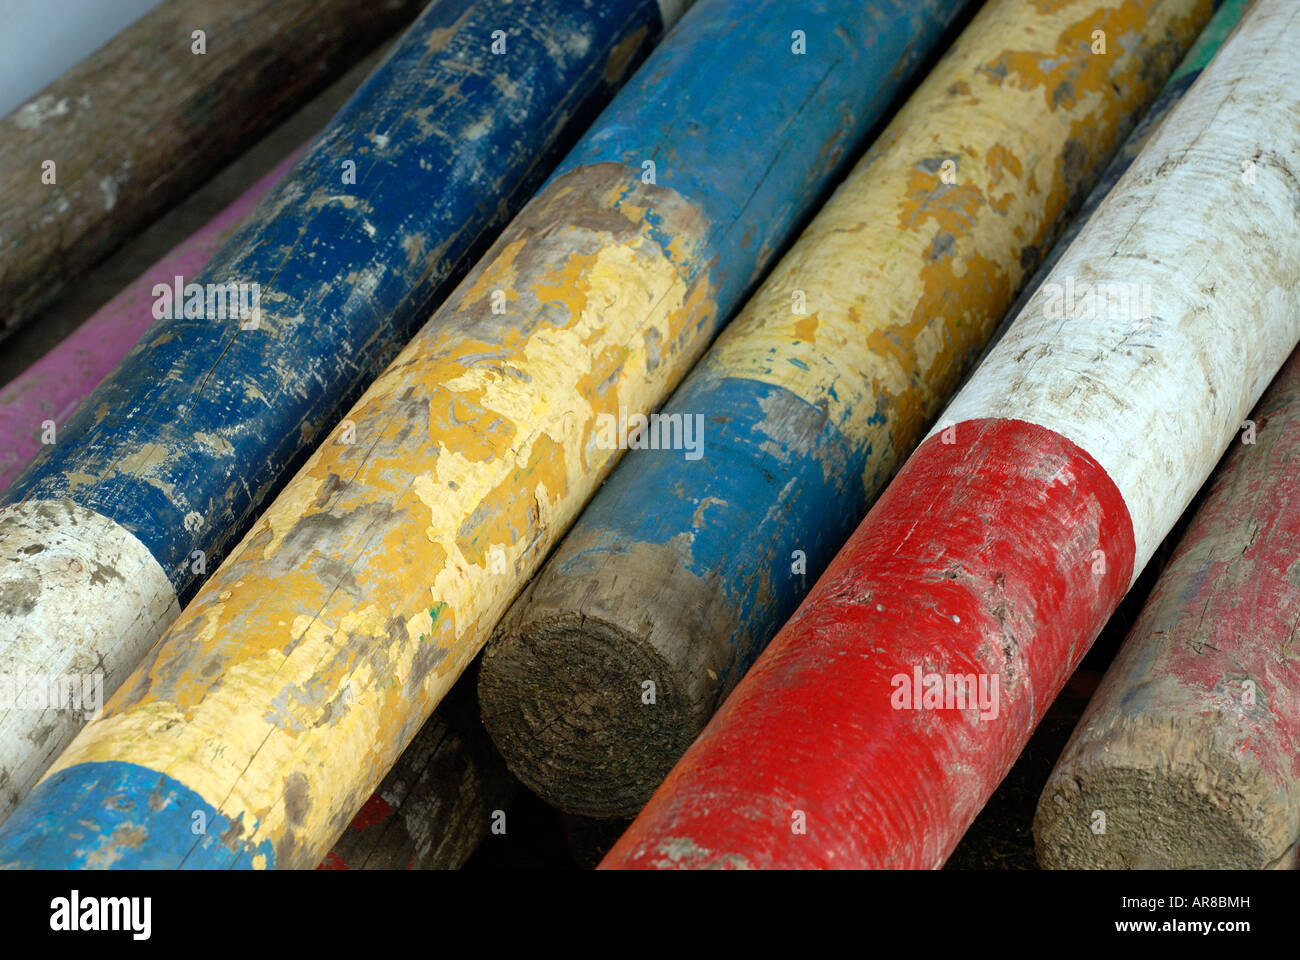 showjumping poles used for building jumps and course building for equine equestrian events stacked up ready for - Stock Image